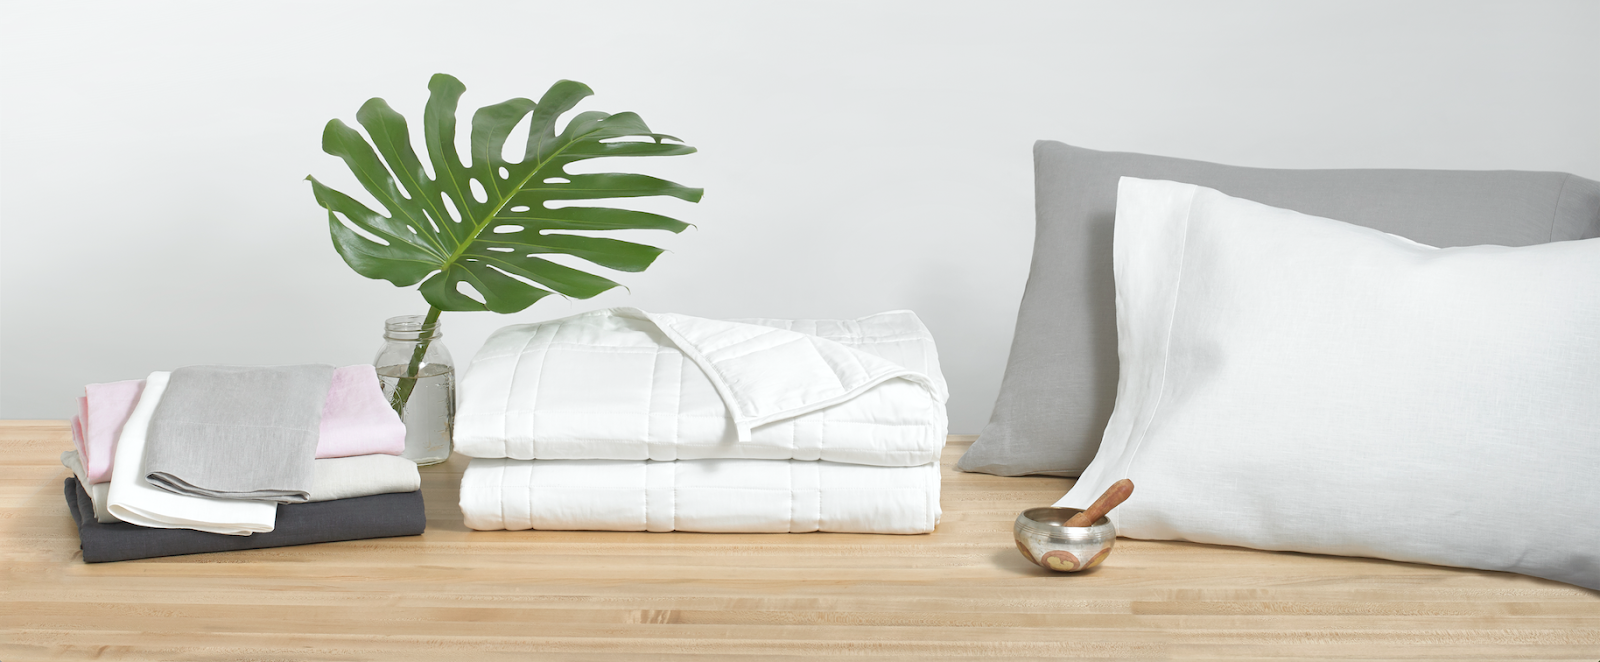 how-i-started-a-100k-month-business-selling-weighted-blankets-from-bali